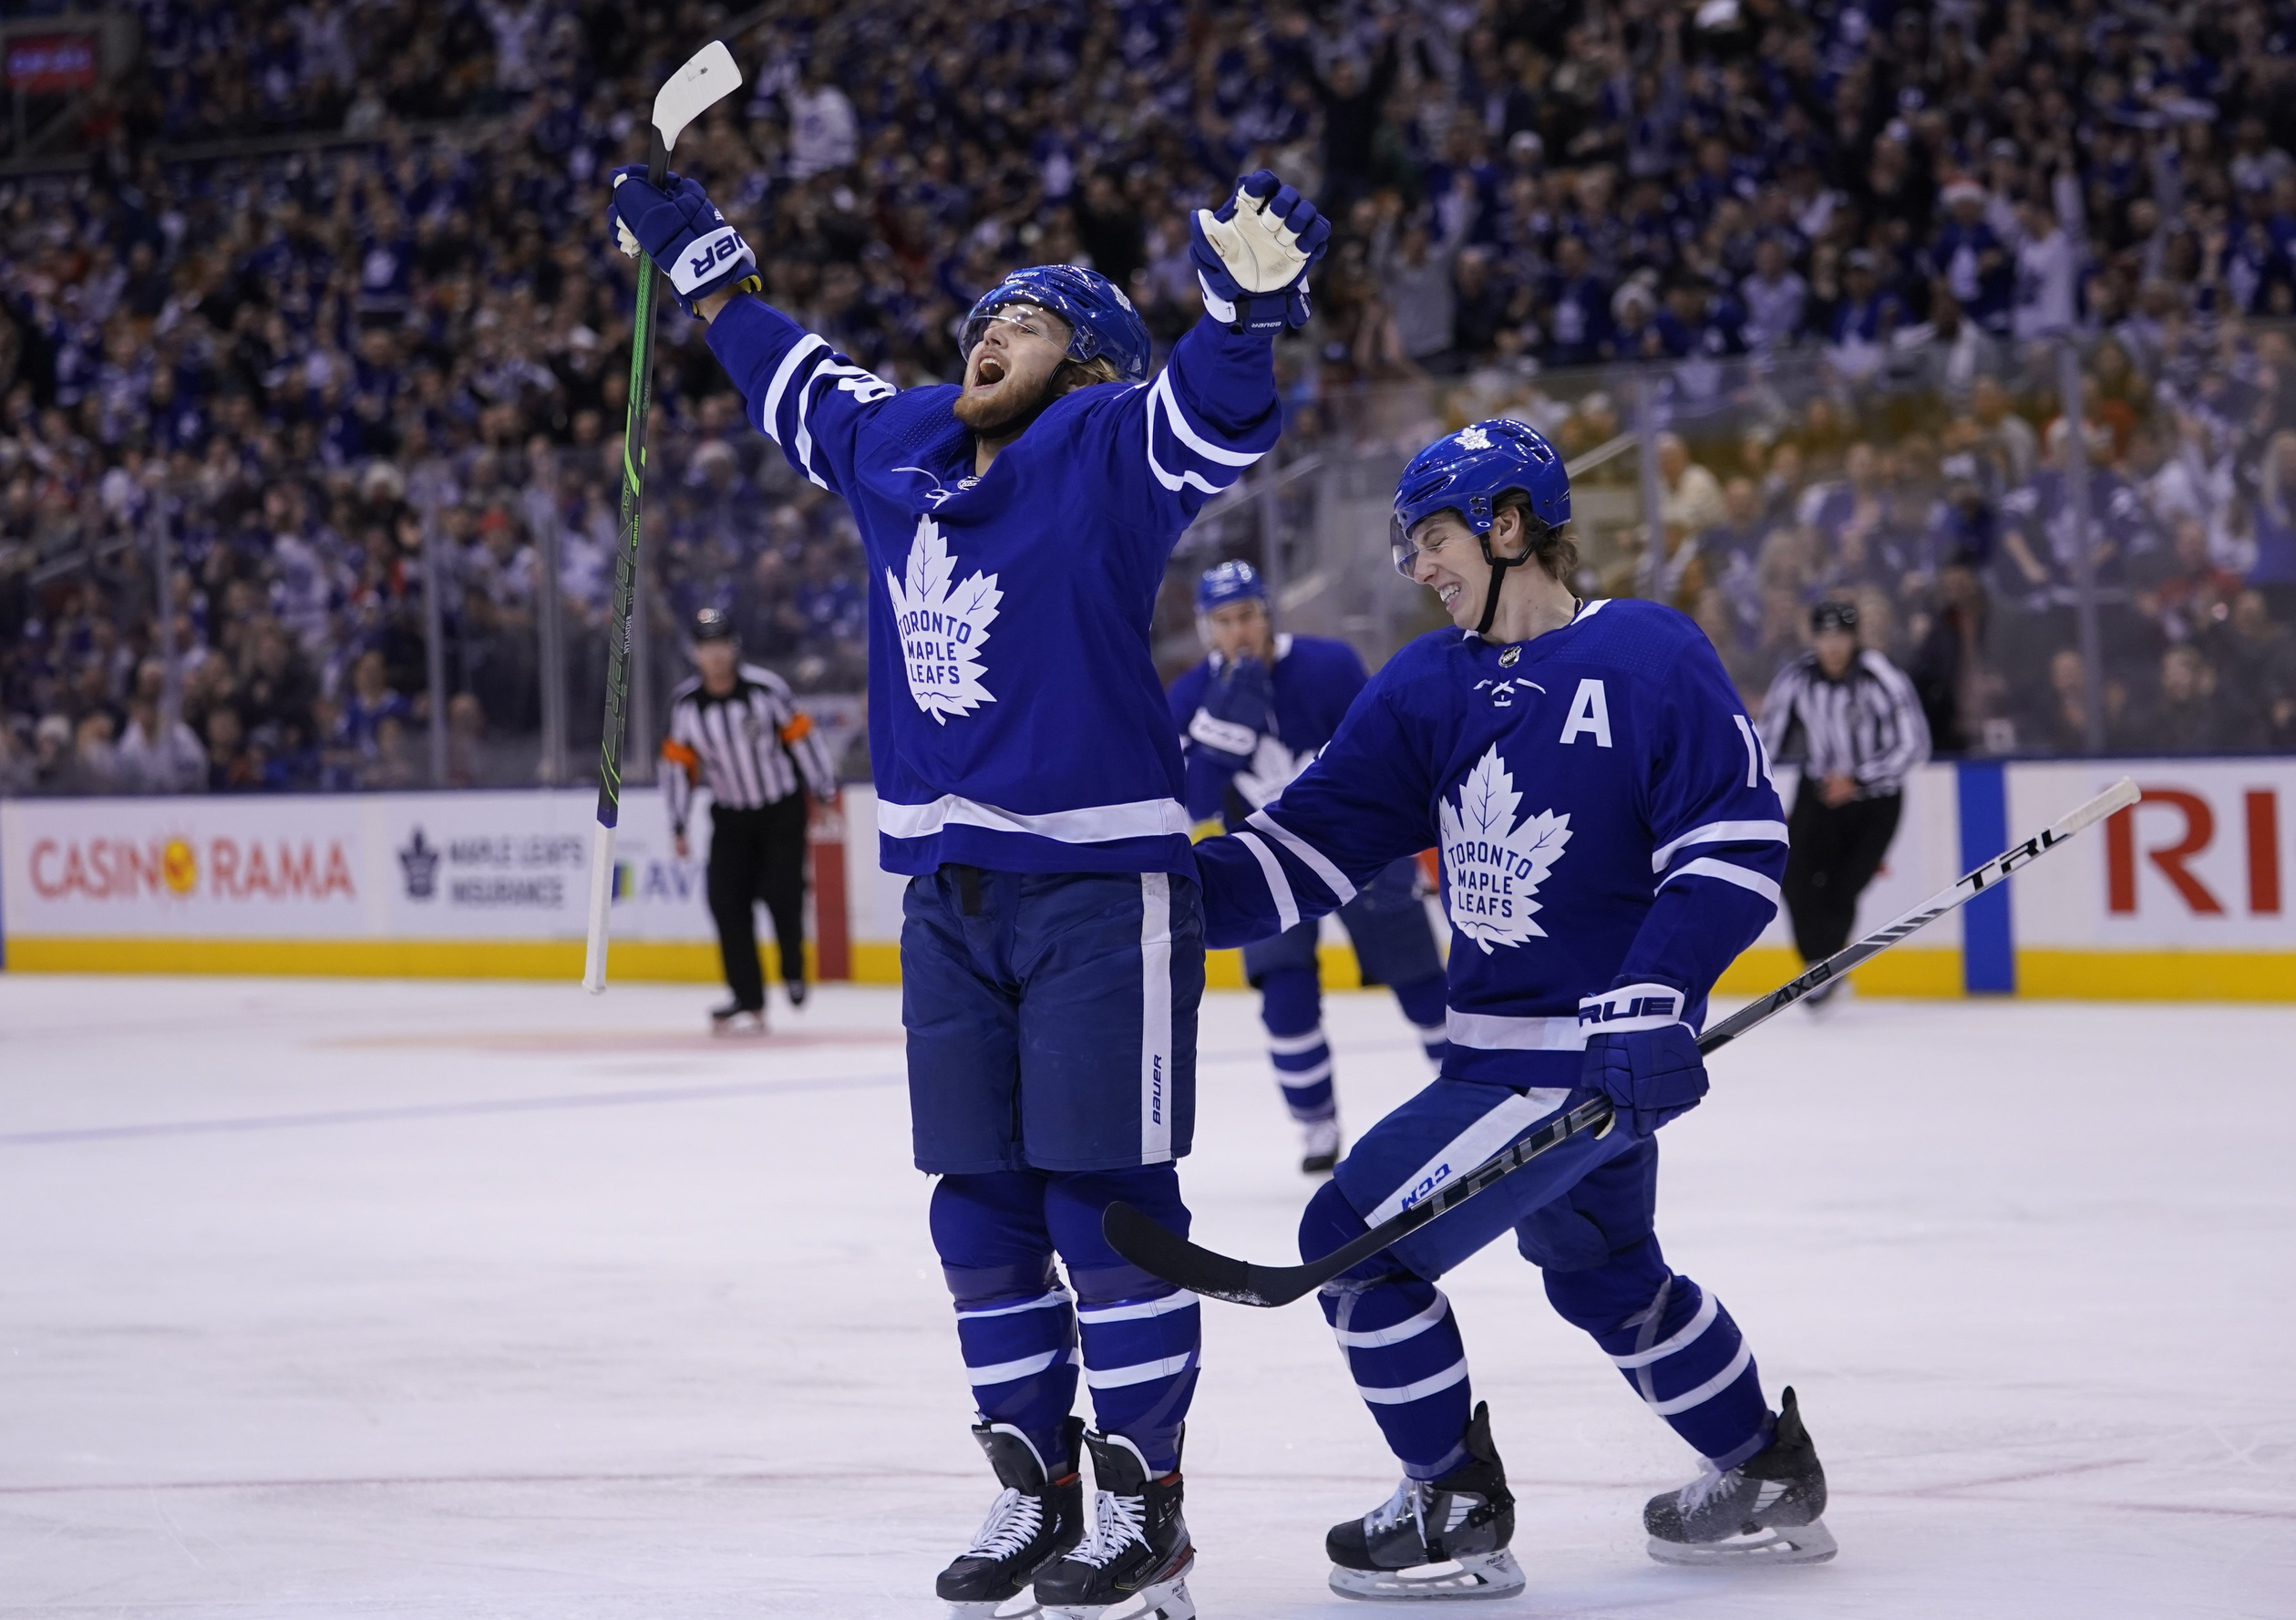 New Jersey Devils vs. Toronto Maple Leafs - 12/27/19 NHL Pick, Odds & Prediction